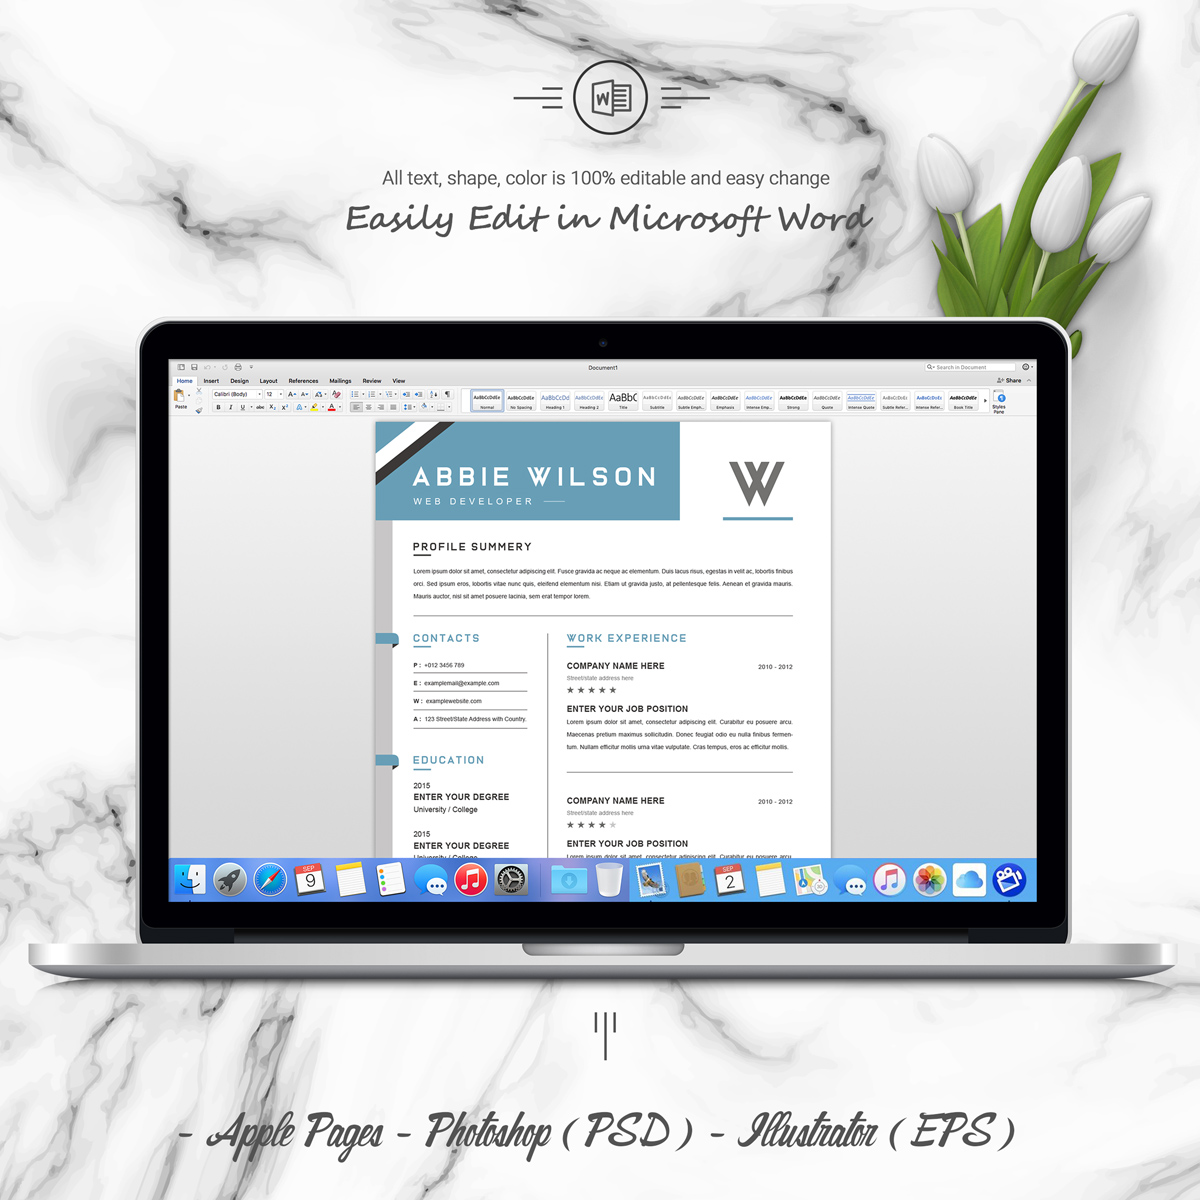 https://s3u.tmimgcdn.com/1860567-1580631489323_05_3-Pages-Free-Resume-MS-Word-File-Format-Design-Template.jpg